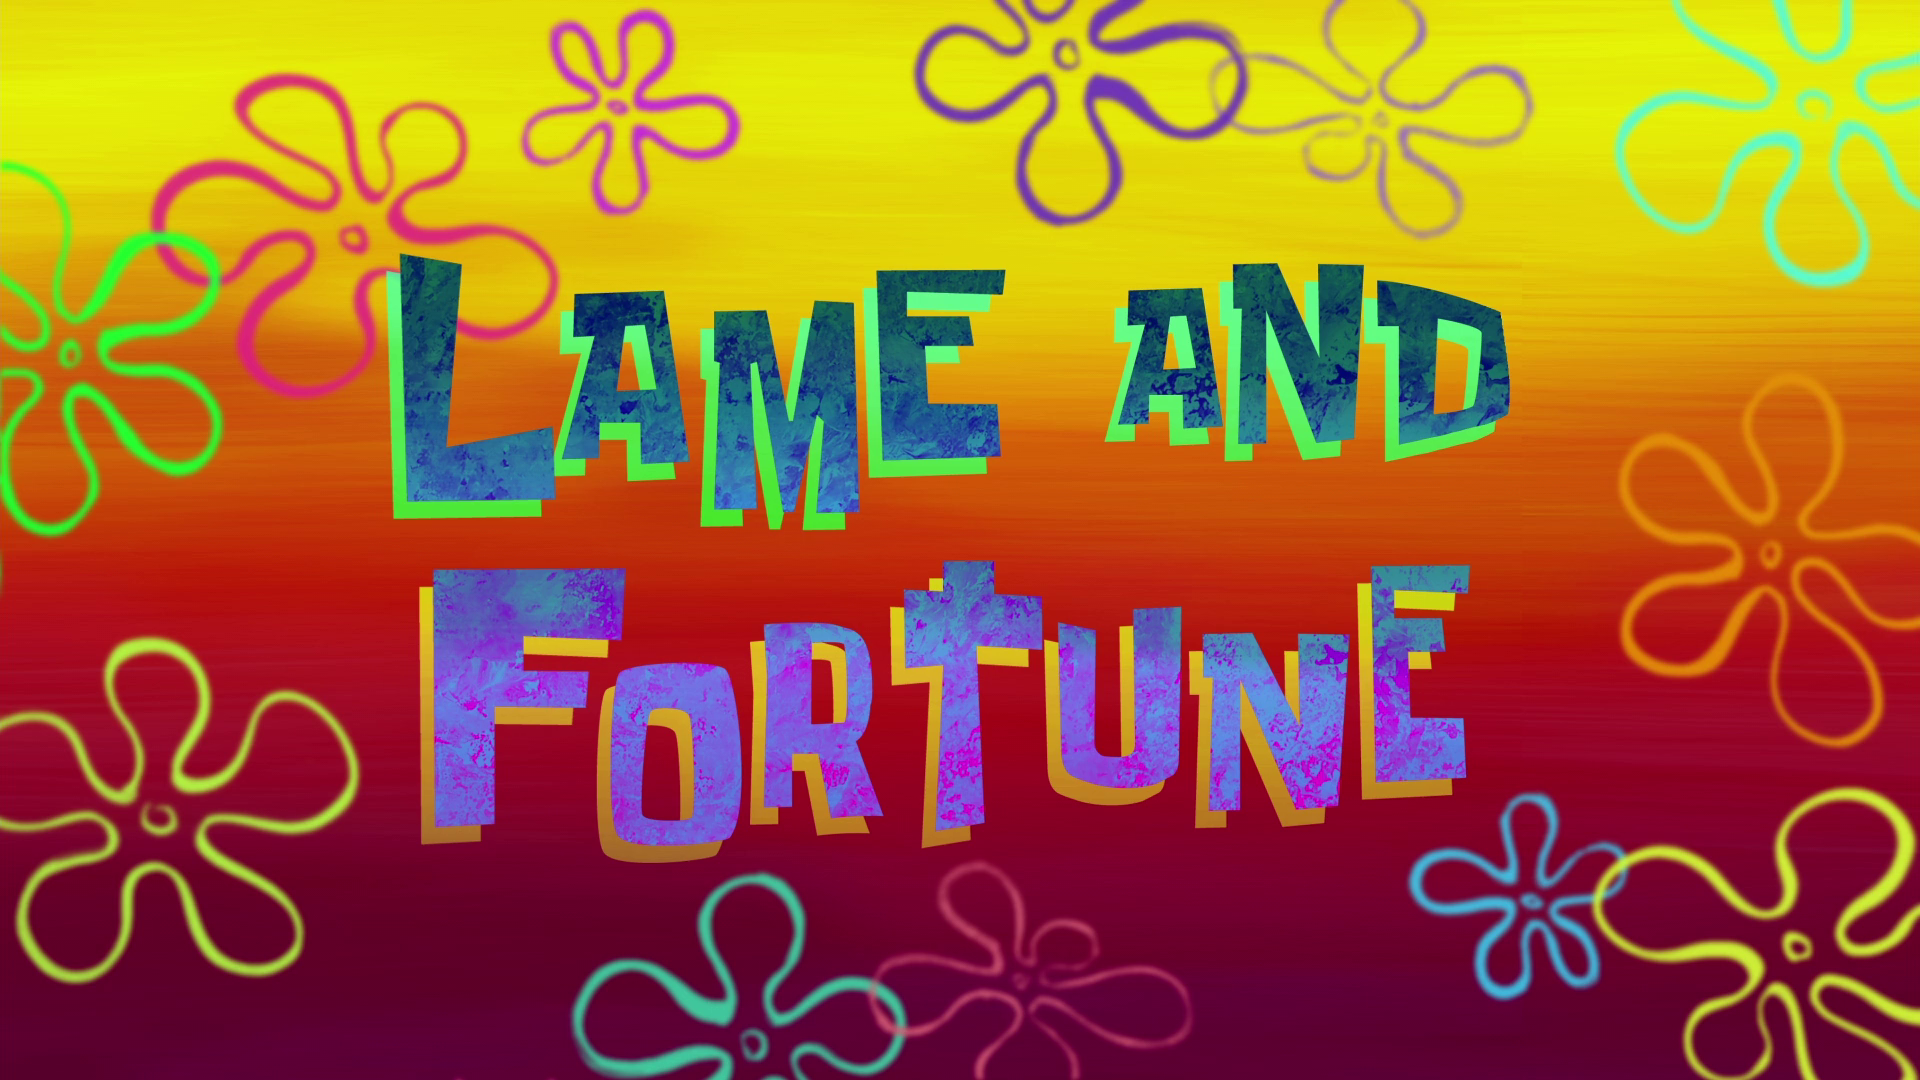 Lame and Fortune/transcript